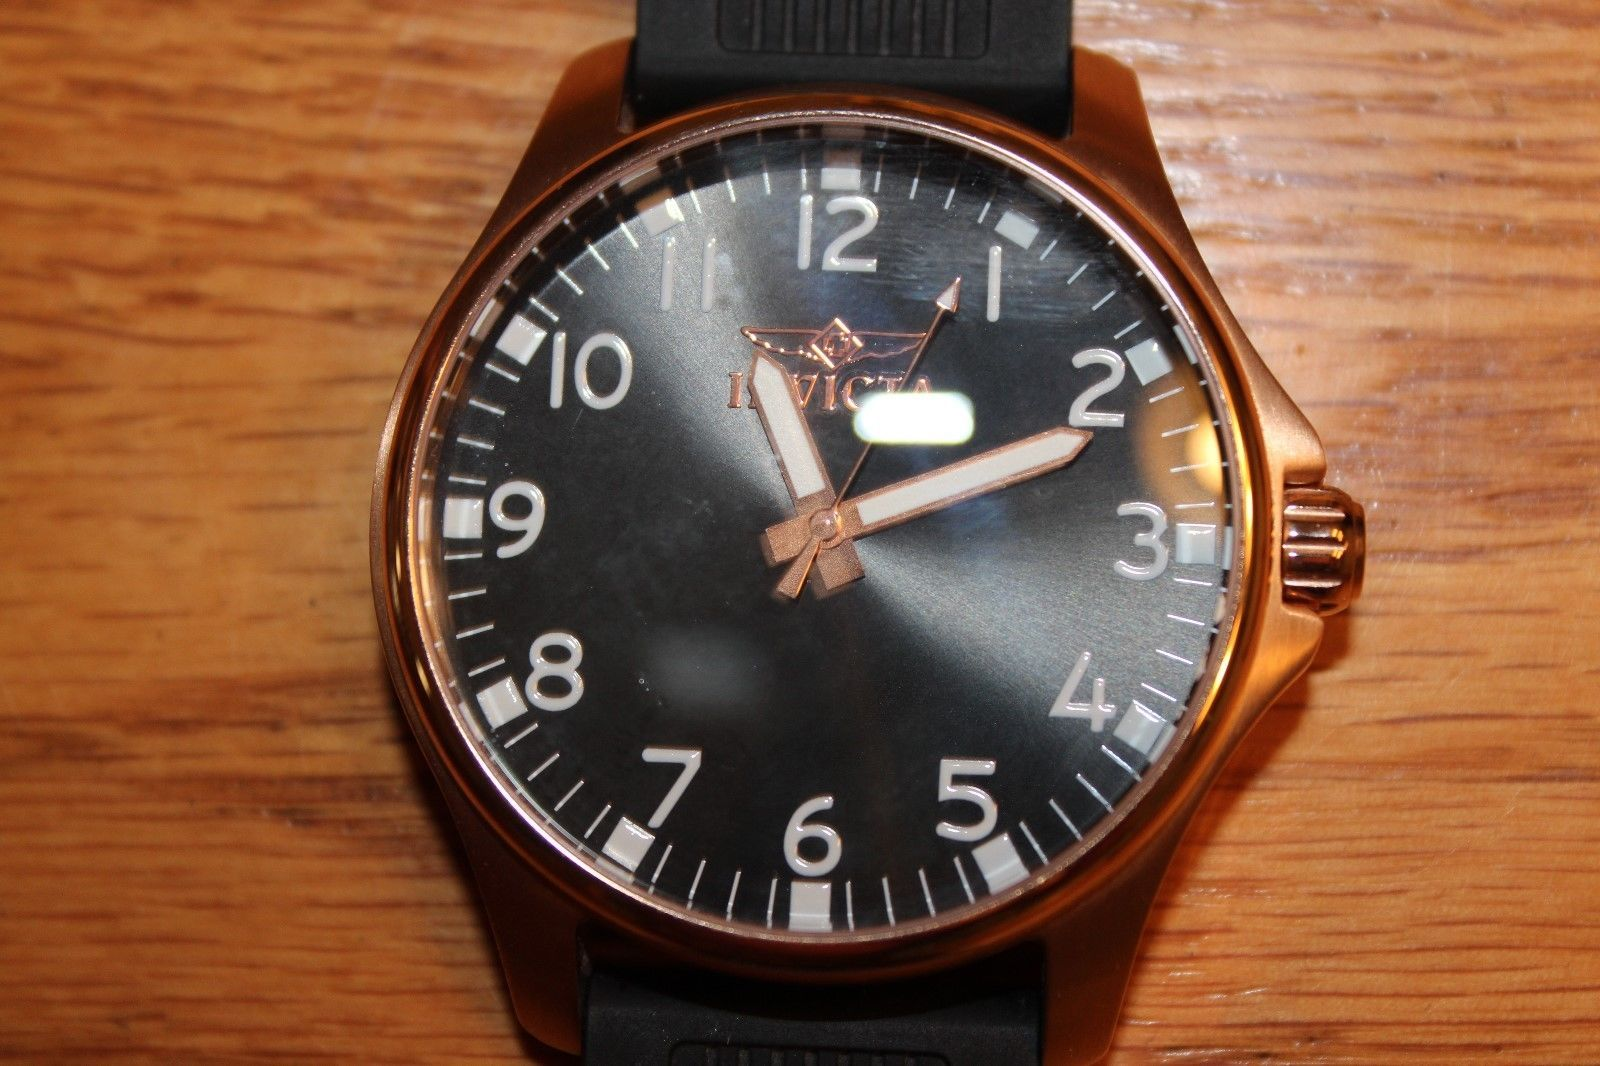 Invicta 11400 Specialty Collection Wrist Watch For Men NEW never worn https://t.co/jB4jrtqOmy https://t.co/W4X7Vznb0v